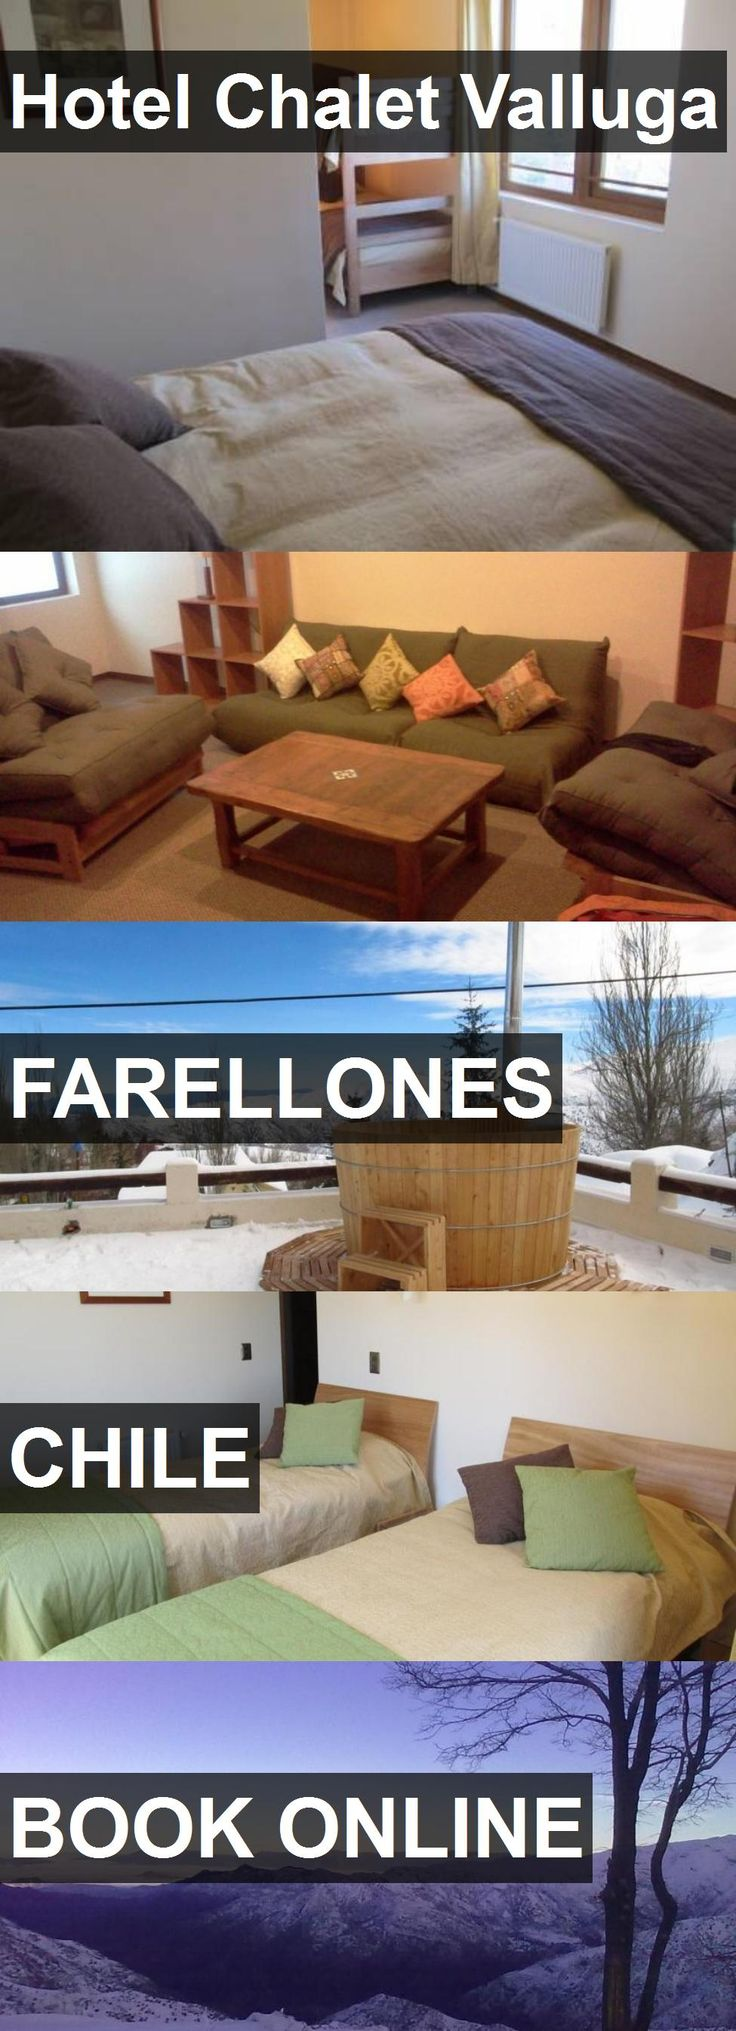 Hotel Chalet Valluga in Farellones, Chile. For more information, photos, reviews and best prices please follow the link. #Chile #Farellones #travel #vacation #hotel